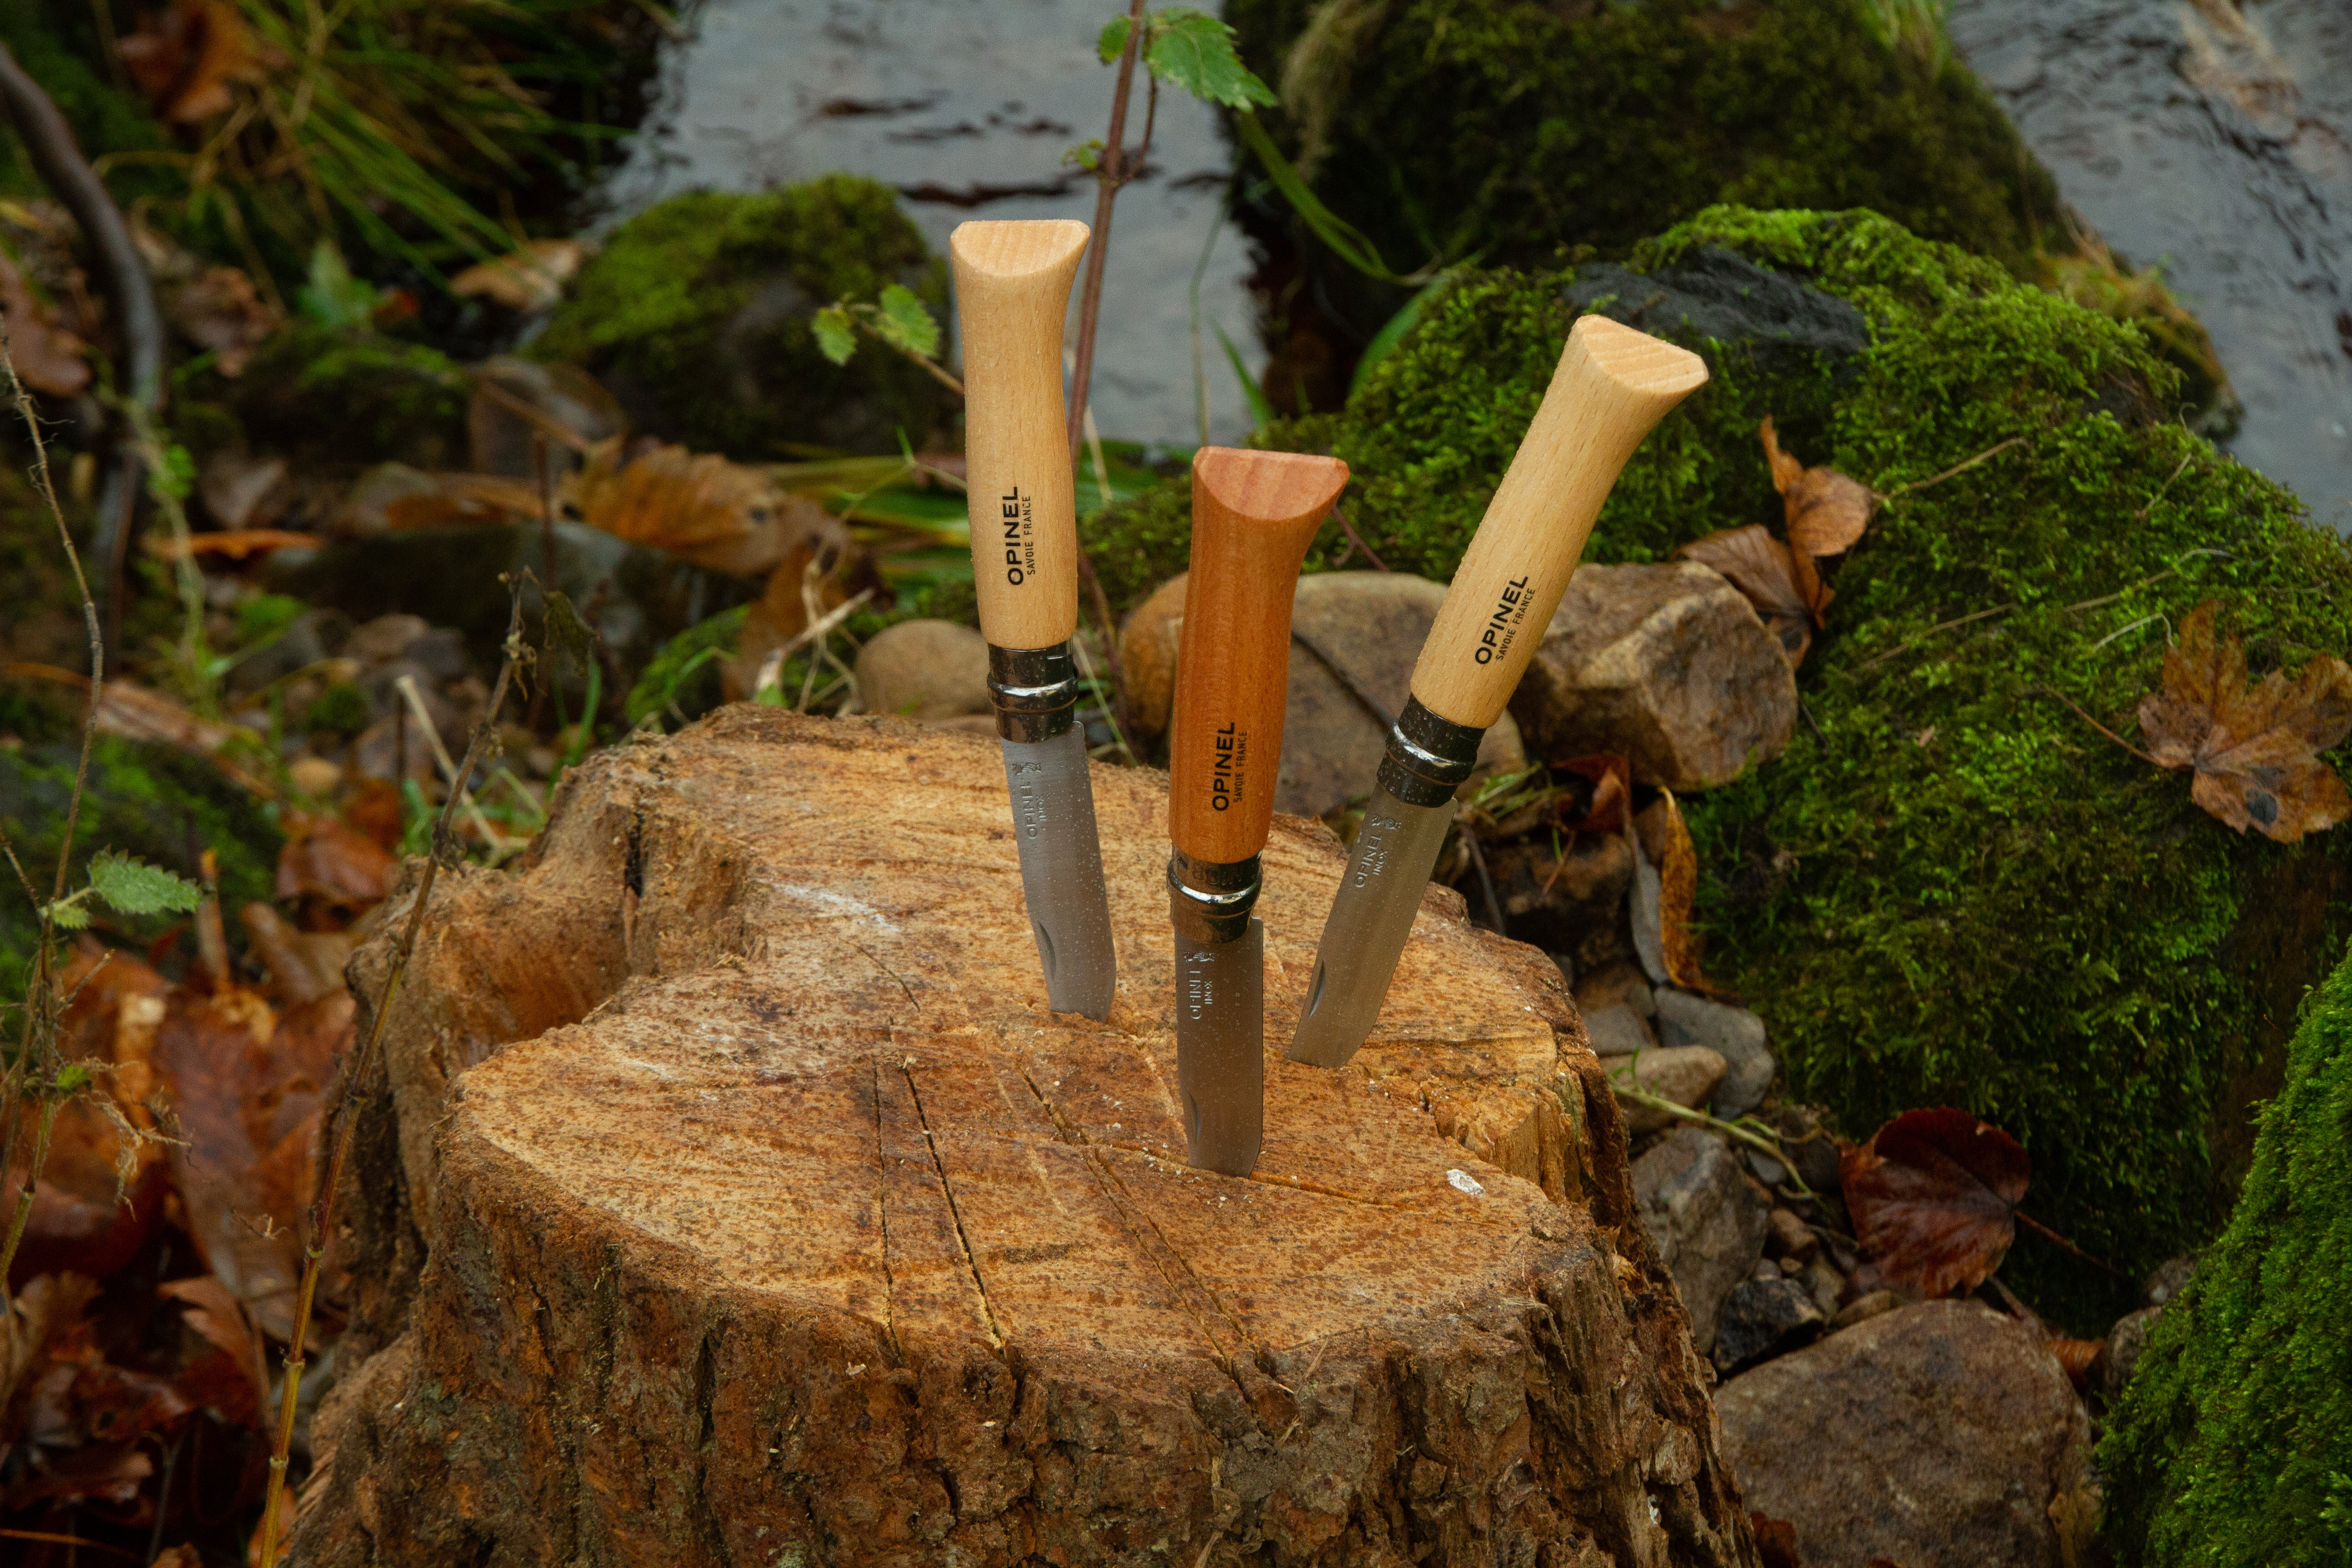 Opinel № 8  knife with Stainless steel blade (Virobloc Locking)